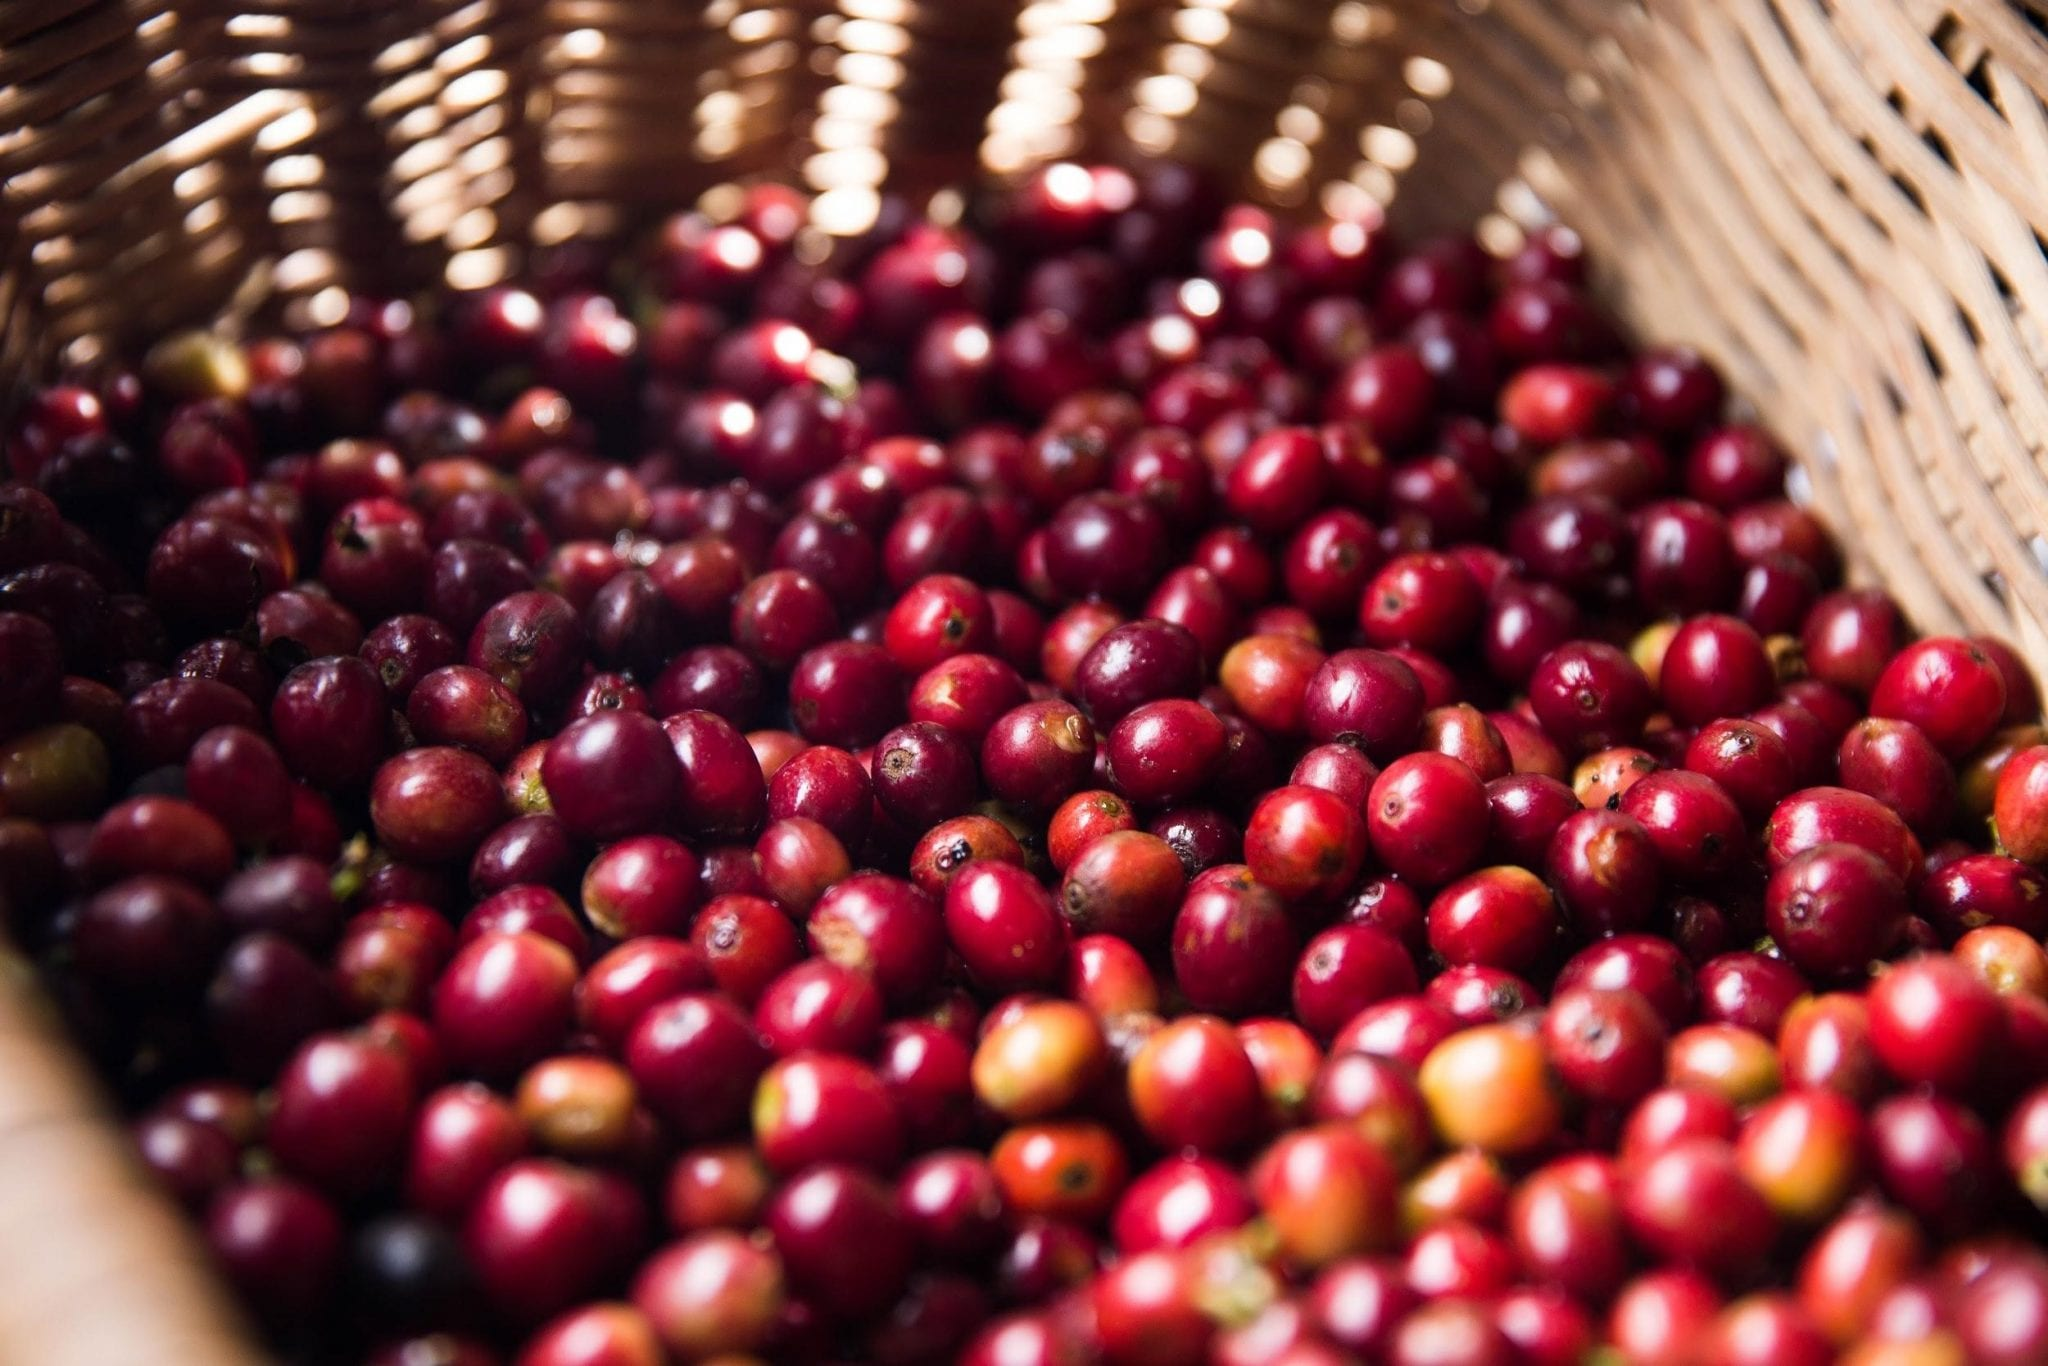 ripe coffee cherries in a bascket